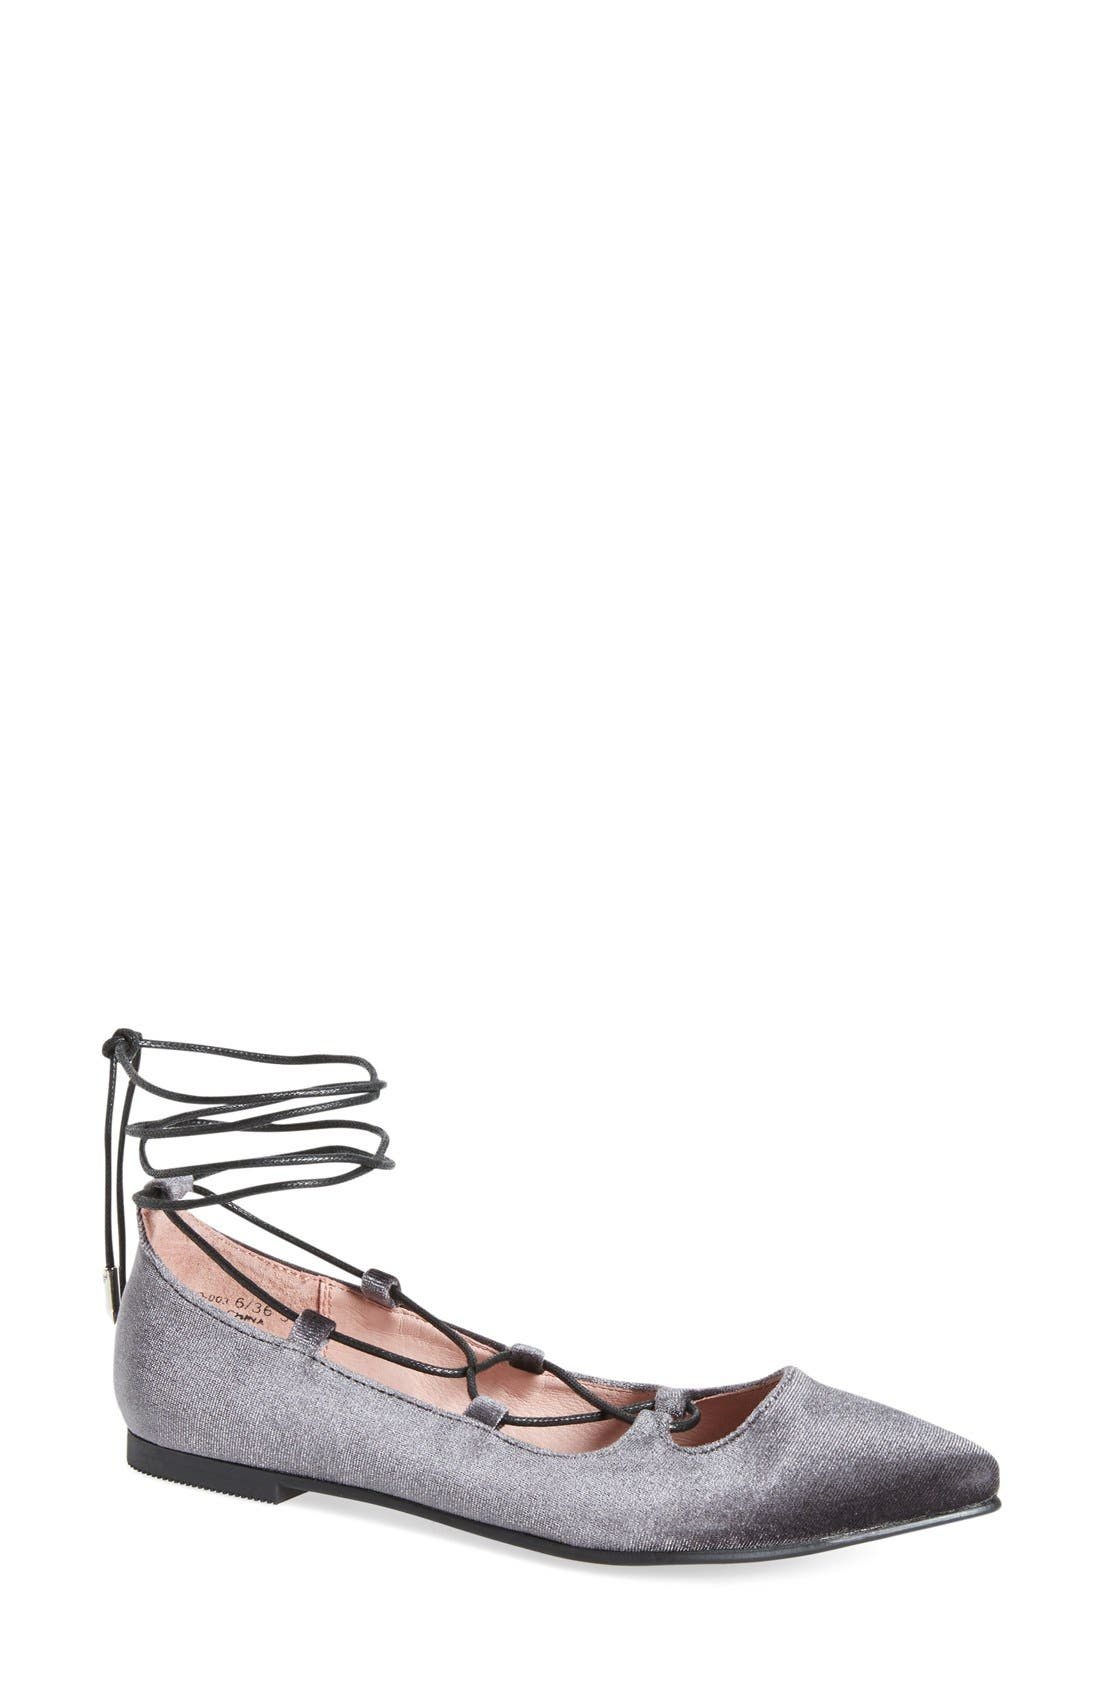 Alternate Image 1 Selected - Chinese Laundry Endless Summer Pointy Toe Ghillie Flat (Women)